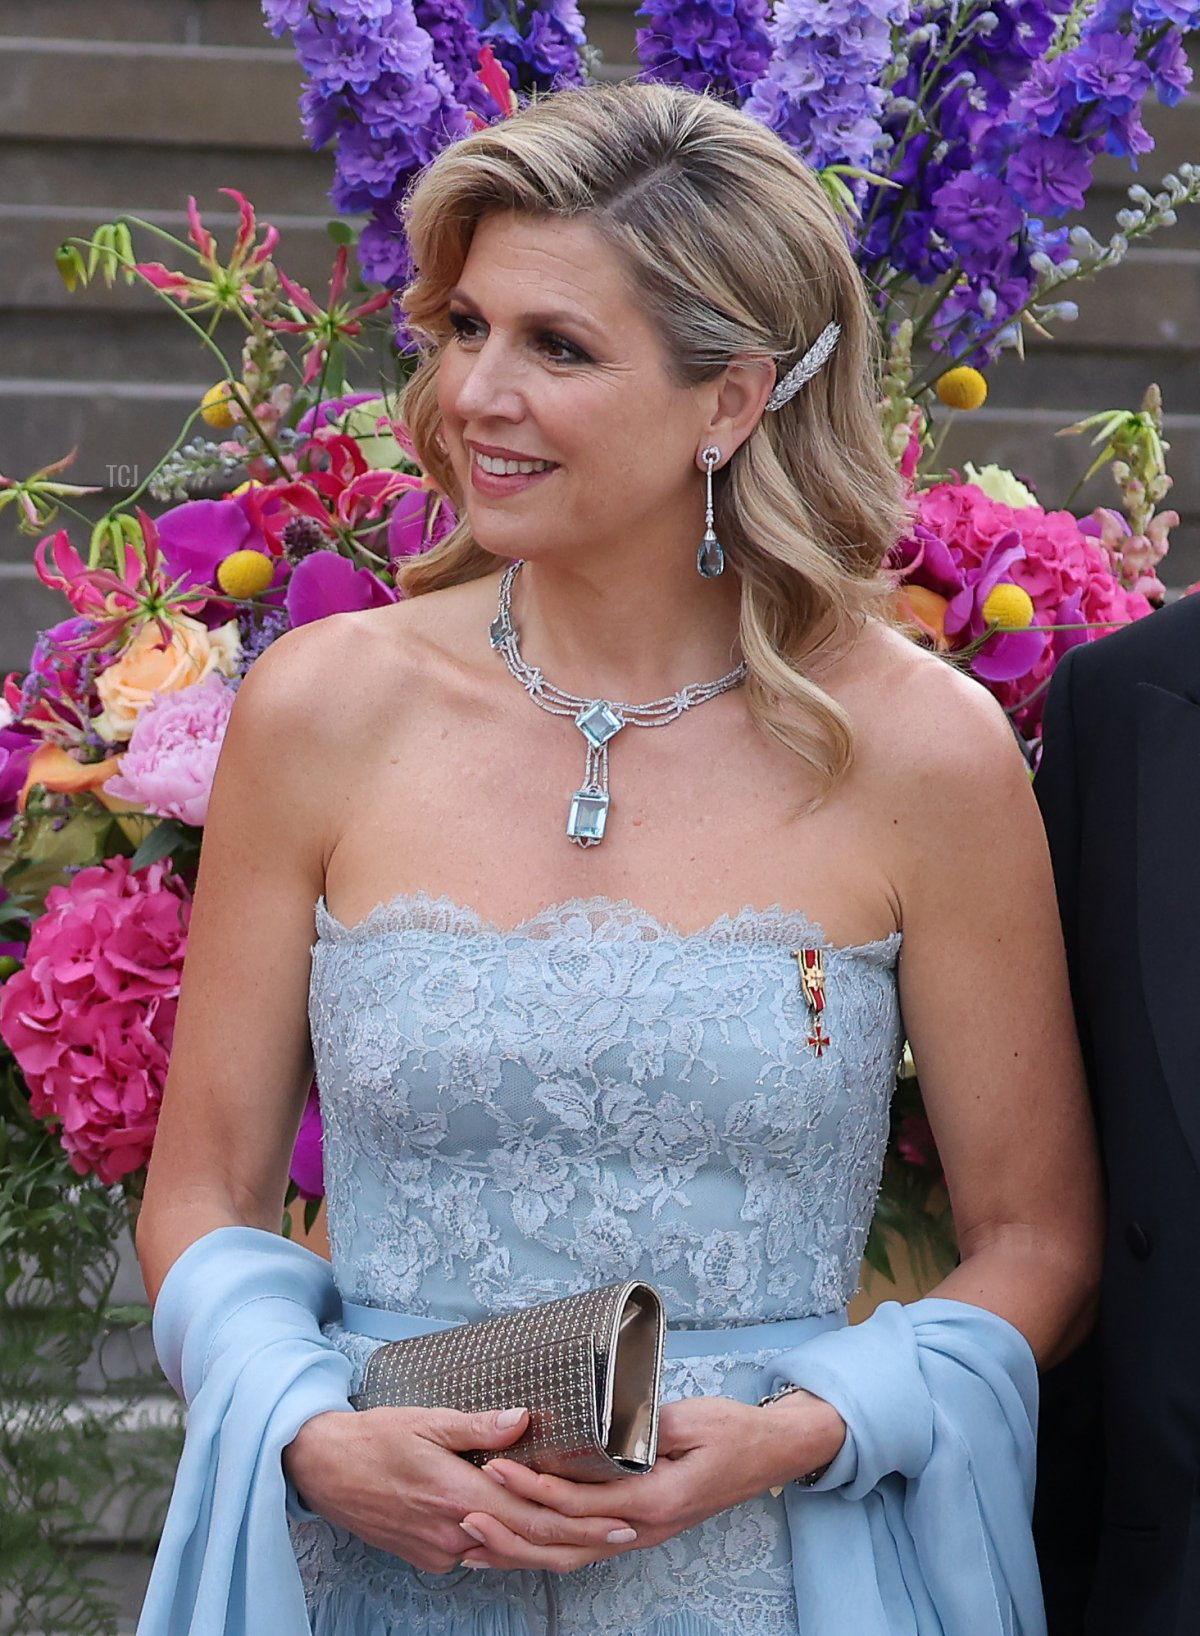 King Willem-Alexander and Queen Maxima of the Netherlands (R) and German President Frank-Walter Steinmeier and First Lady Elke Buedenbender arrive at the Konzerthaus am Gendarmenmarkt on July 06, 2021 in Berlin, Germany